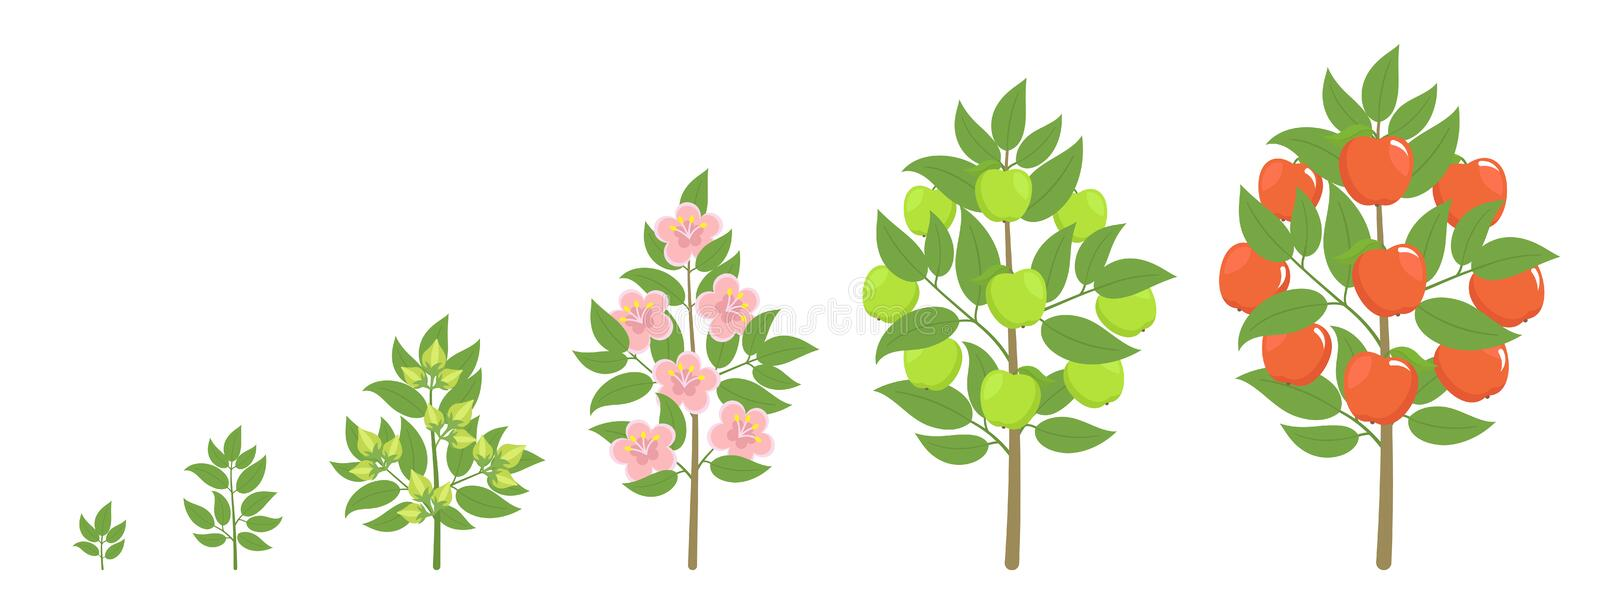 Apple tree growth stages. Ripening period progression. Fruit tree life cycle animation plant seedling. Apple increase phases. Apple tree growth stages. Vector royalty free illustration